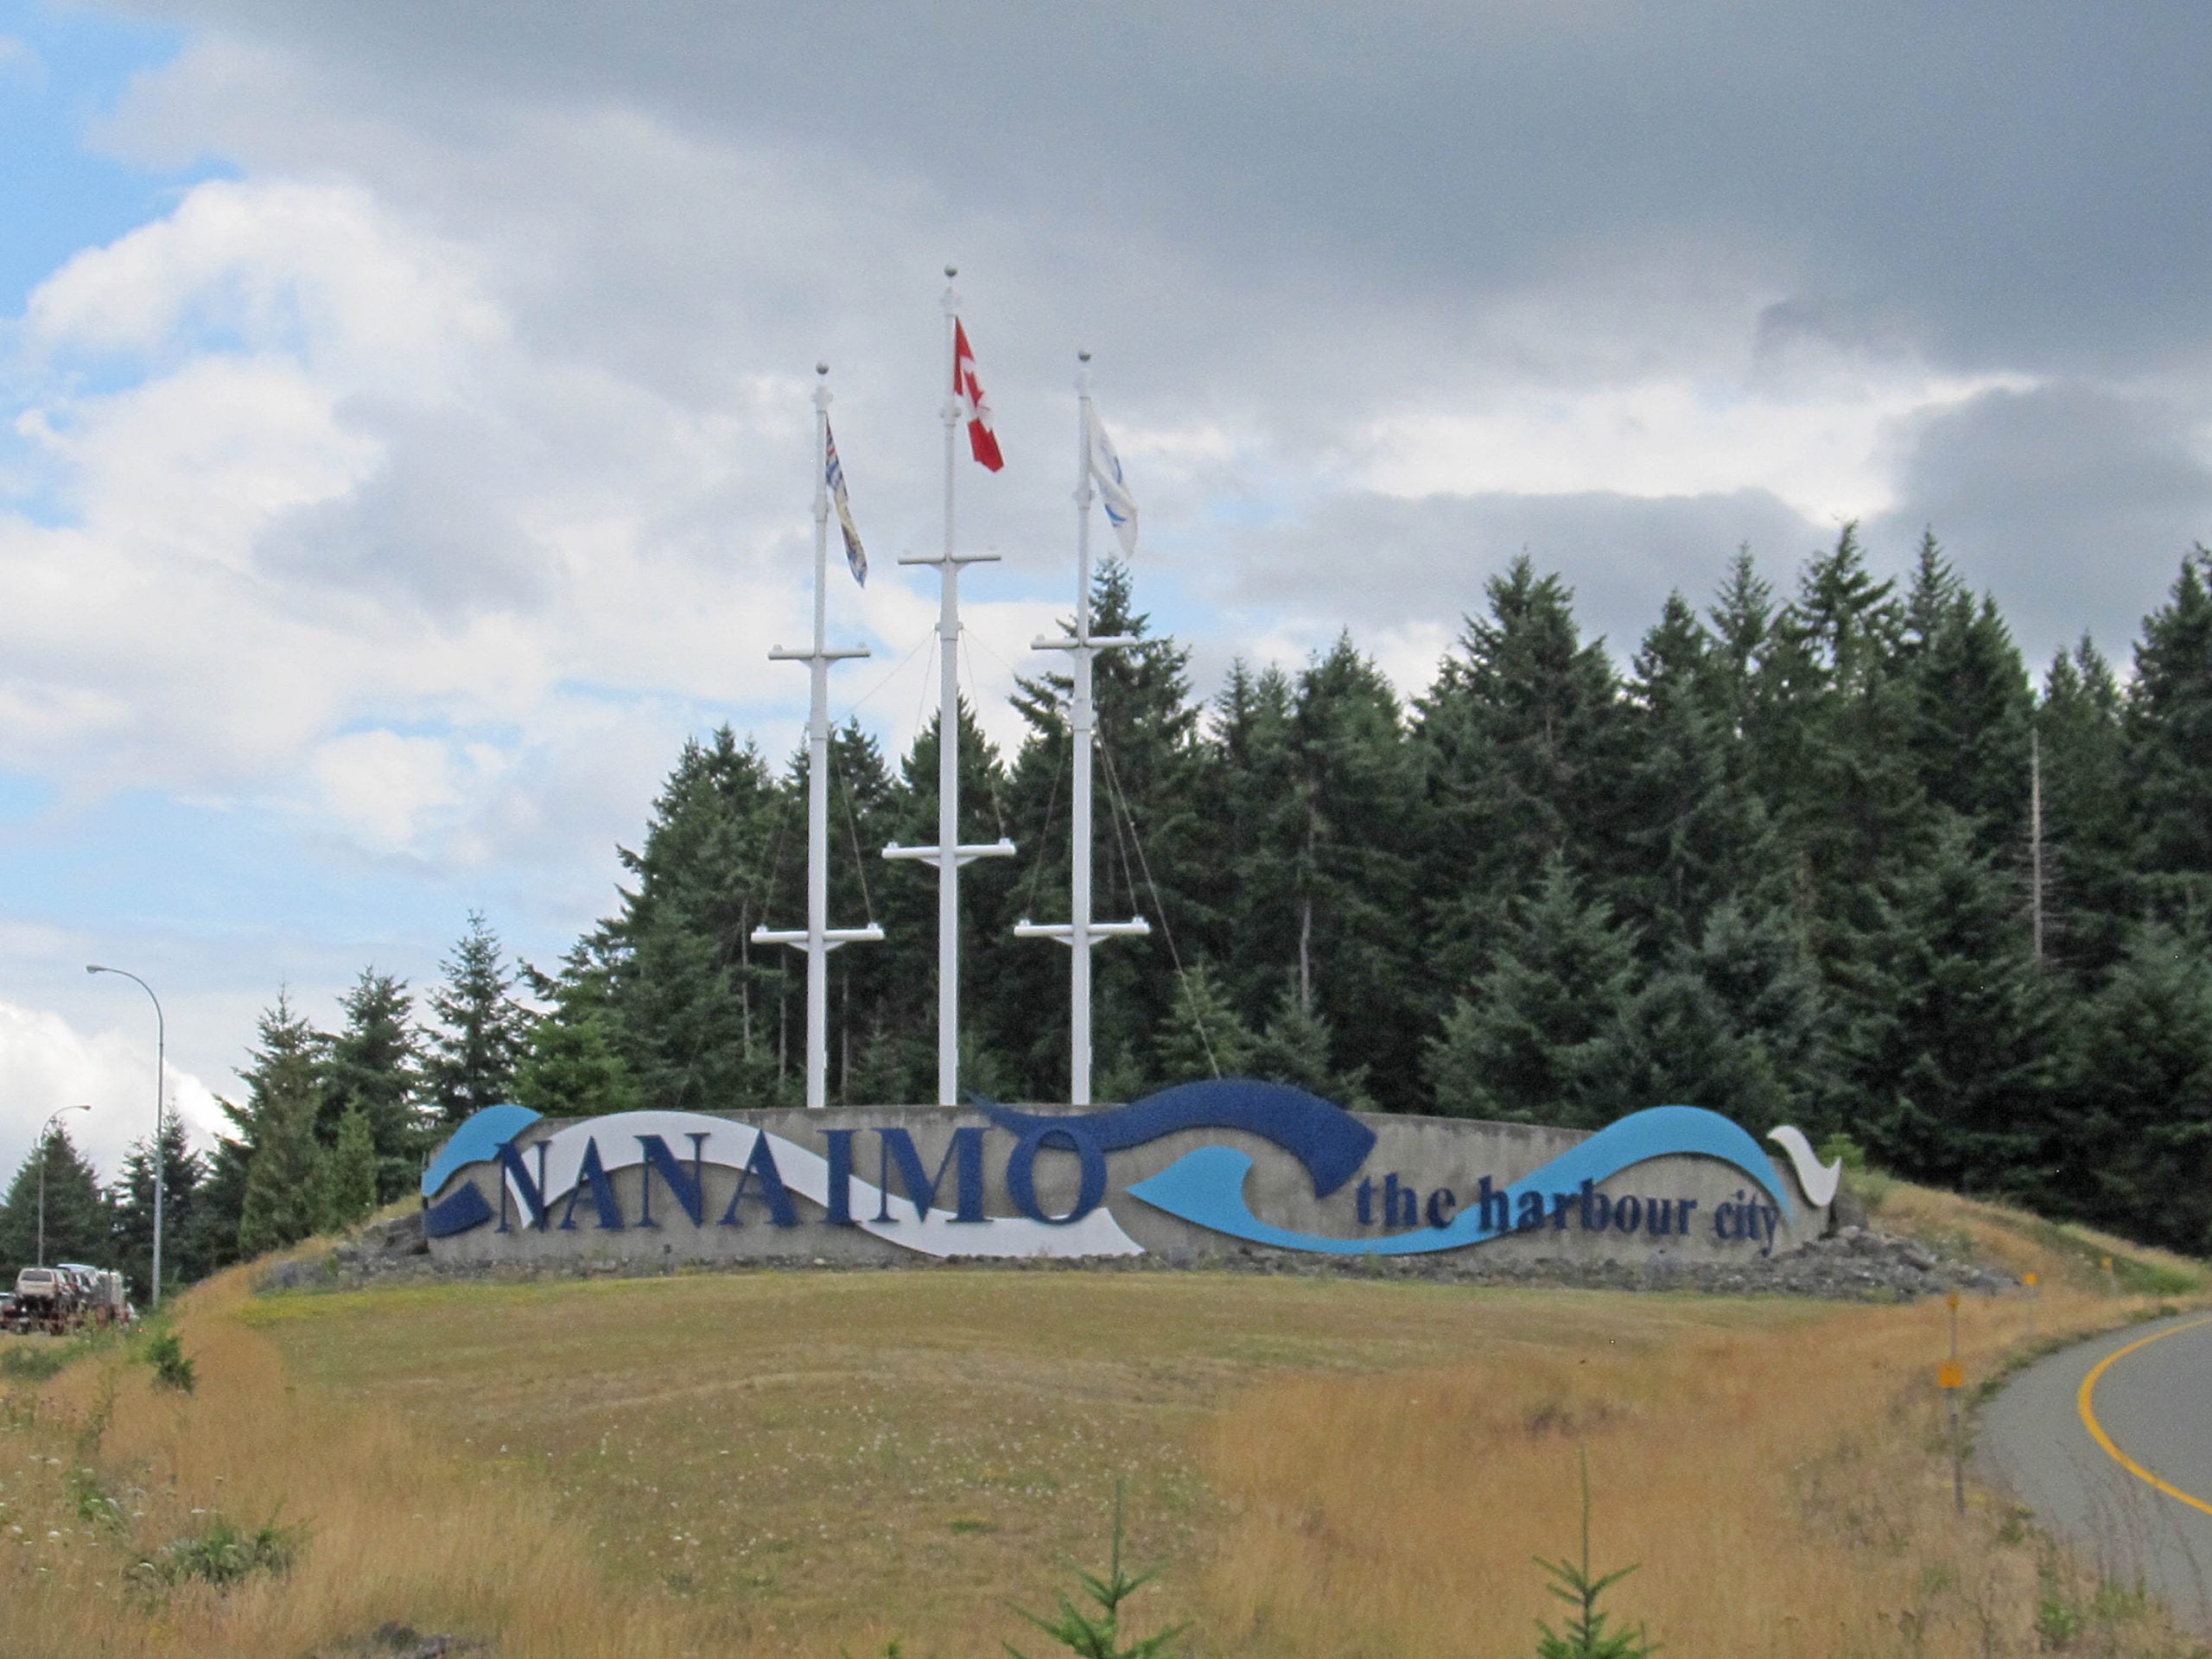 Nanaimo Sign